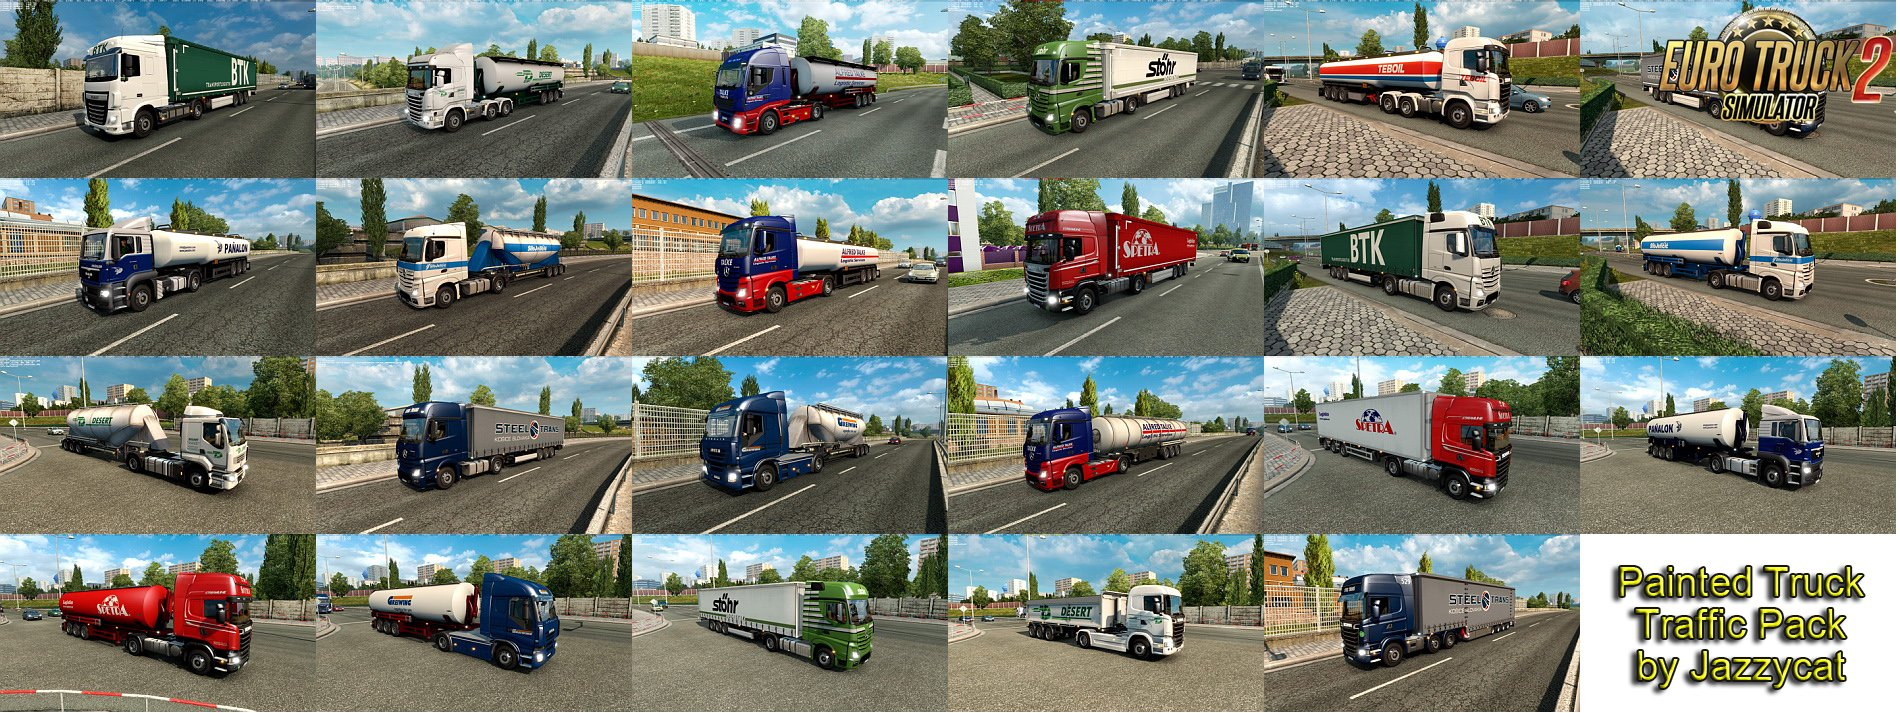 Painted Truck Traffic Pack v2.7 by Jazzycat [1.26.x]